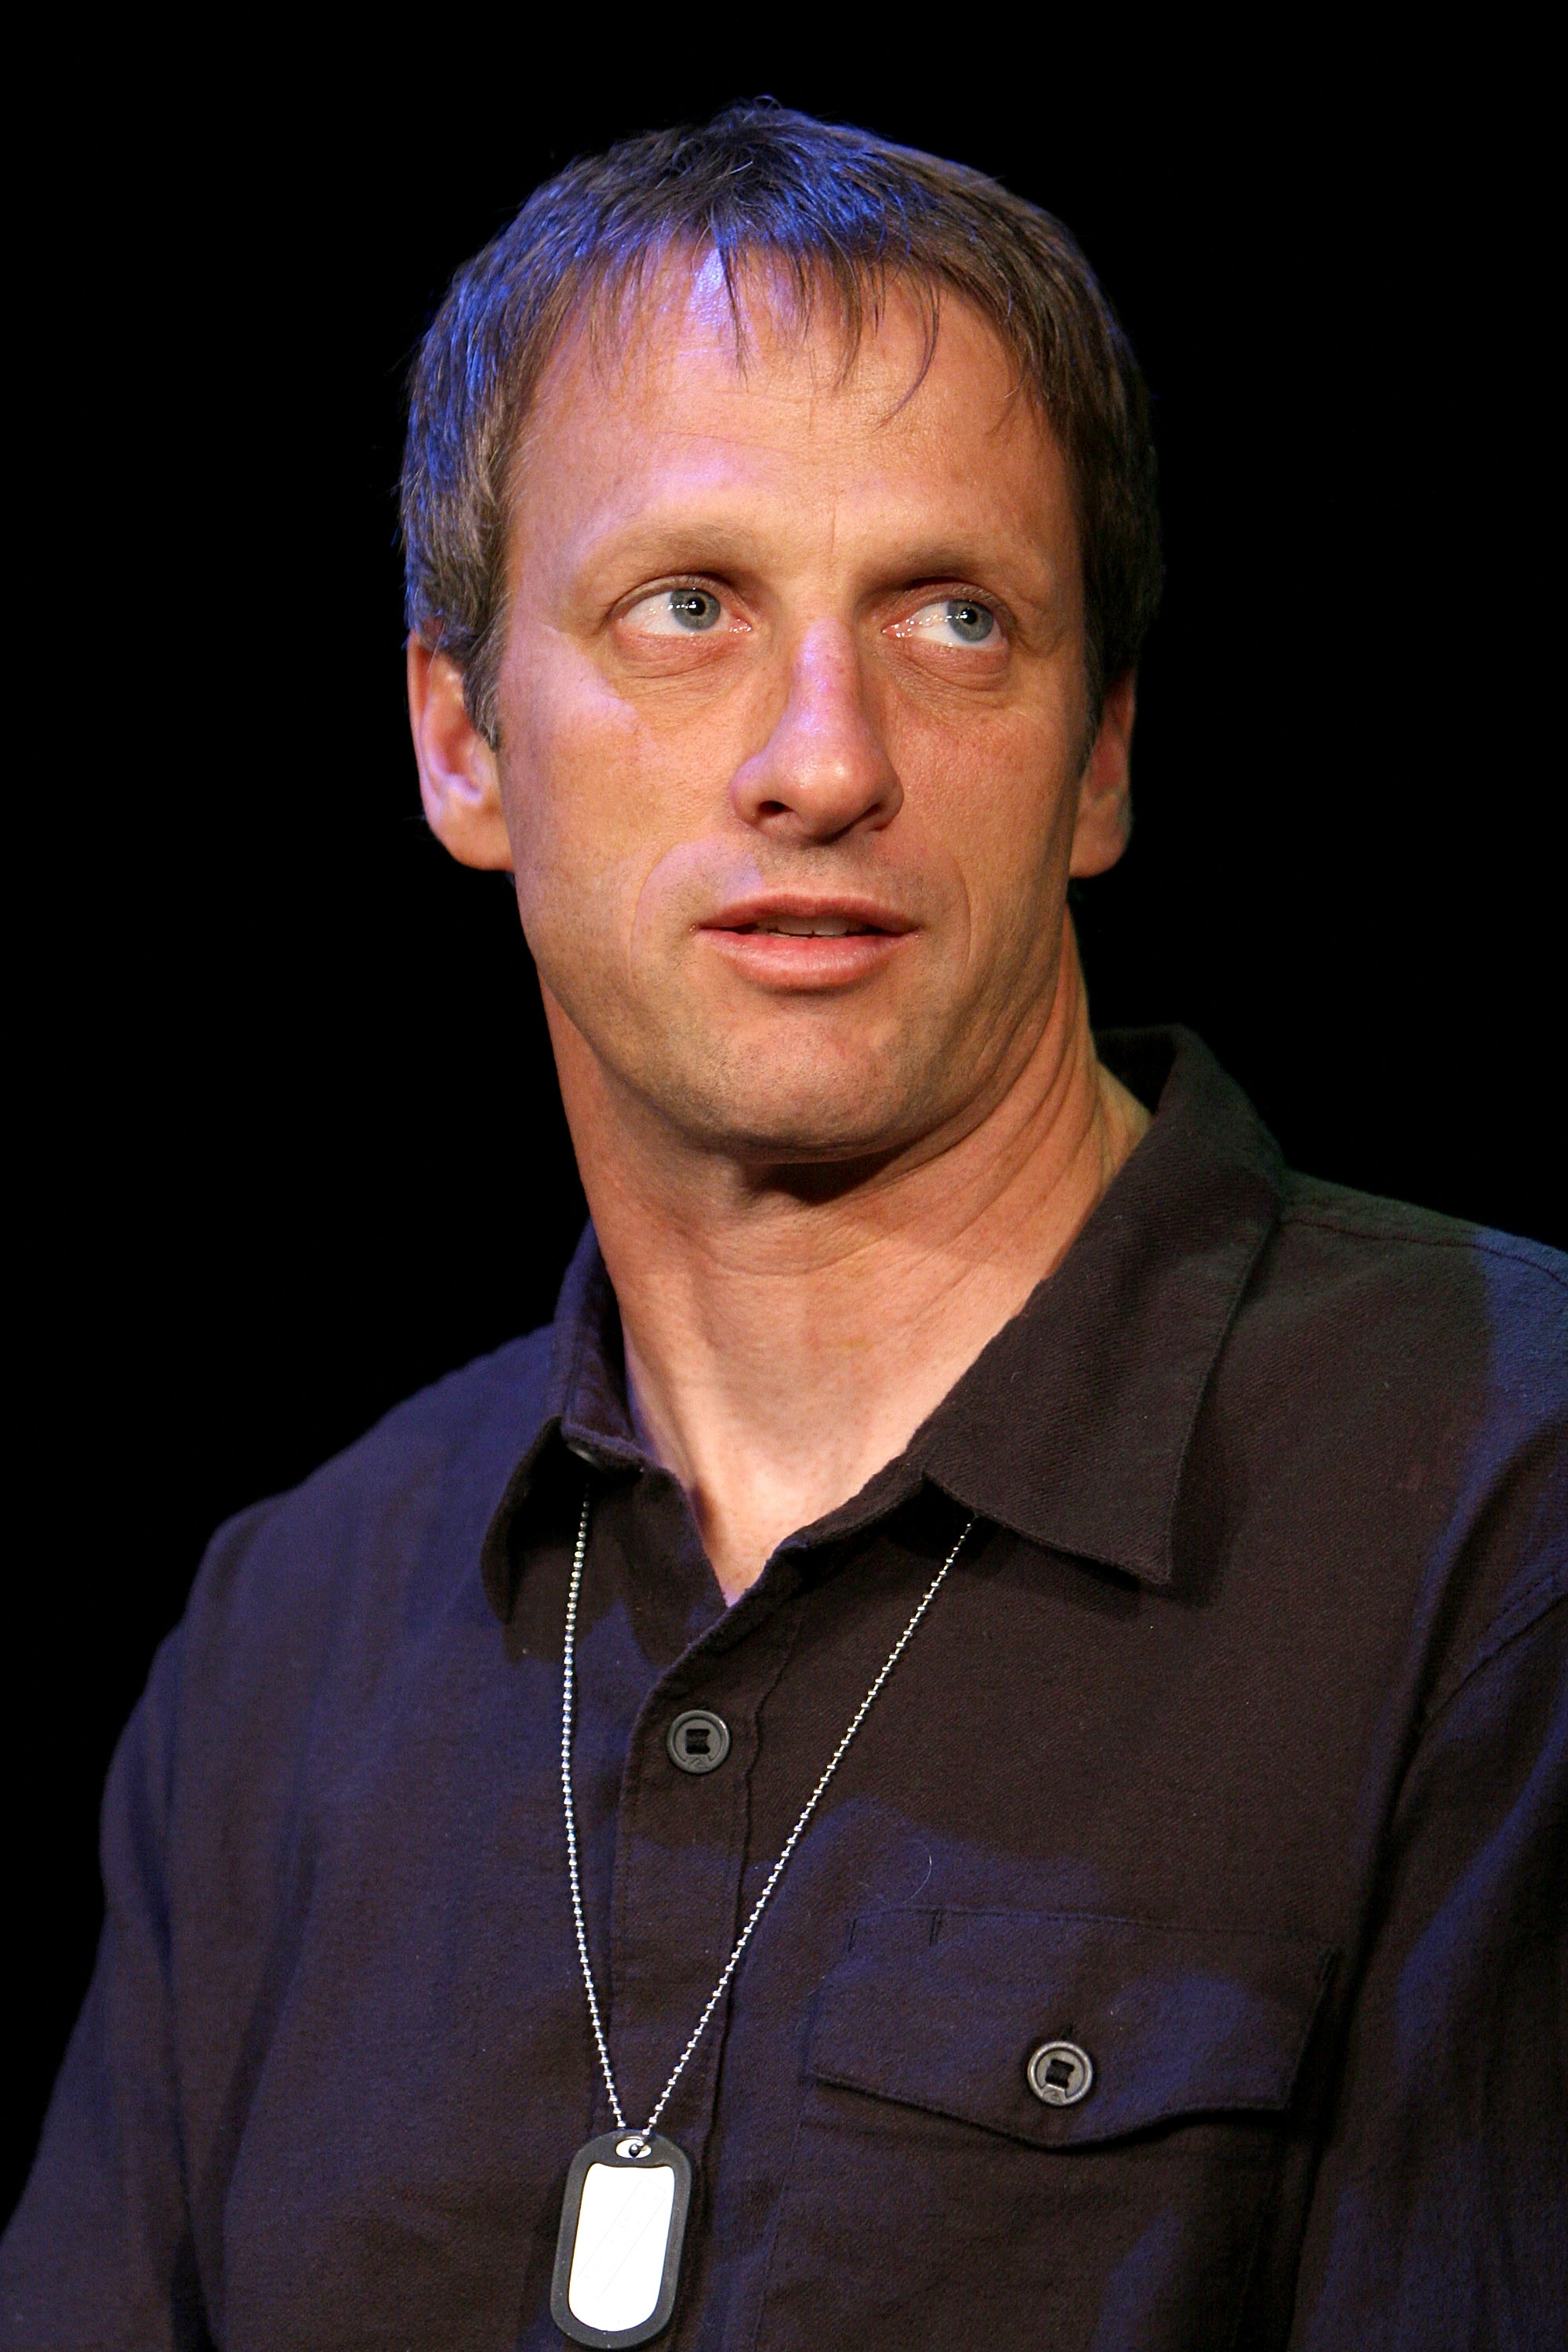 NEW YORK - APRIL 25:  Skateboarding pro Tony Hawk attends a press conference for Athletes for Hope at Manhattan Center Studios on April 25, 2007 in New York City.  (Photo by Scott Wintrow/Getty Images)